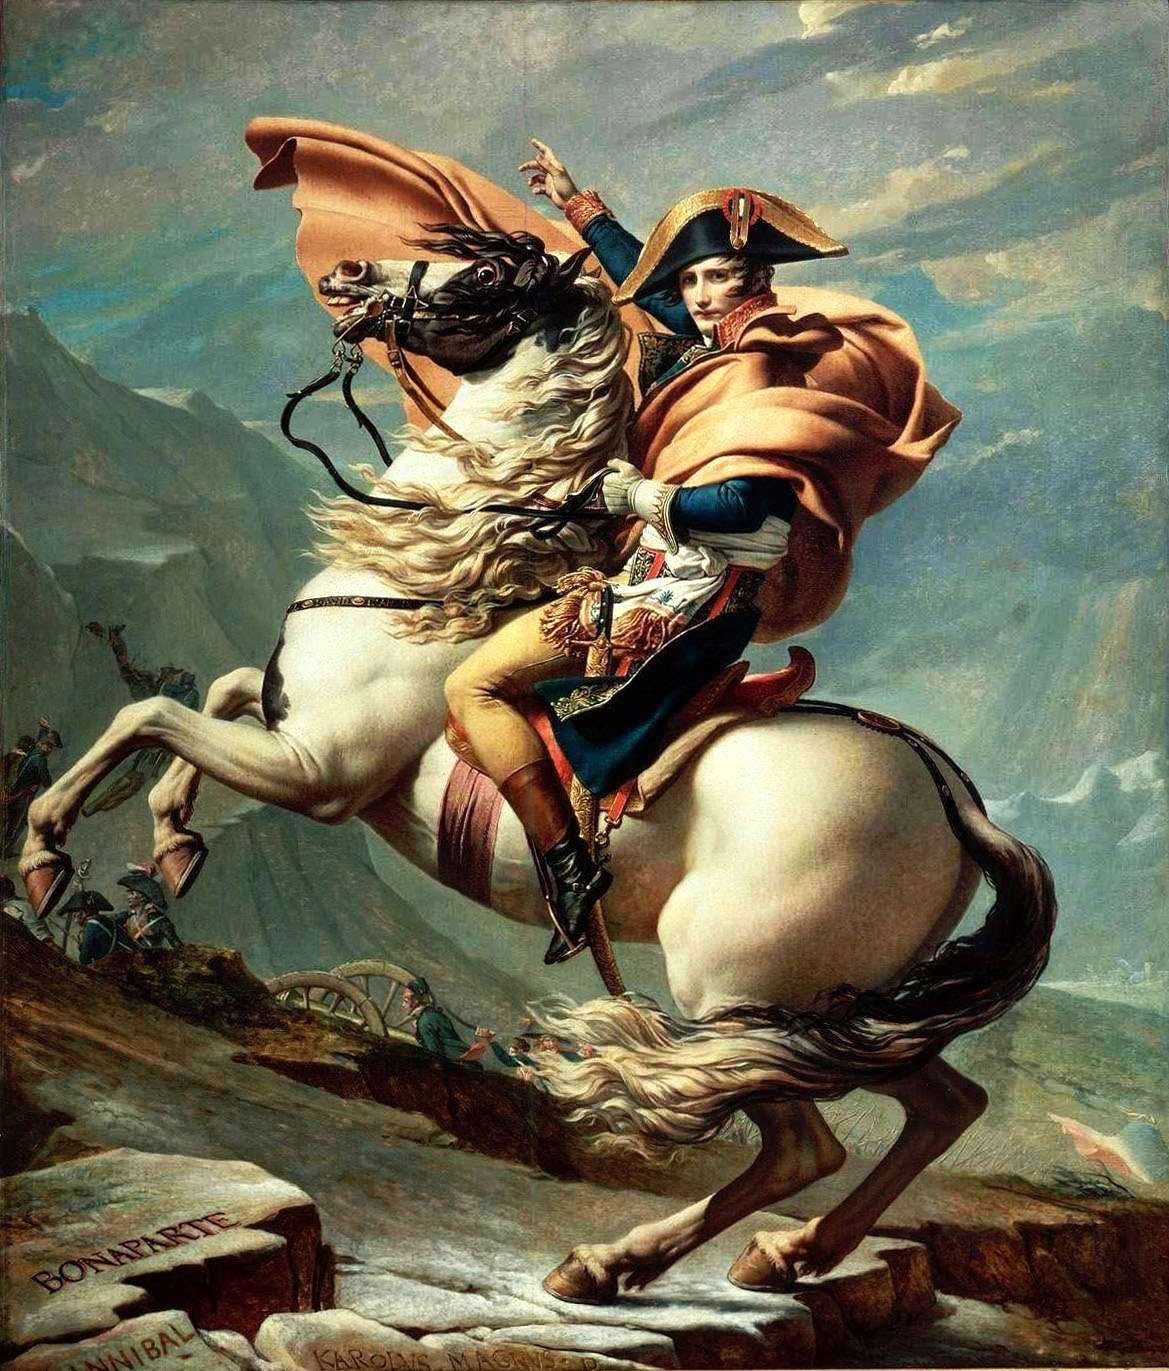 Napoleon on horseback